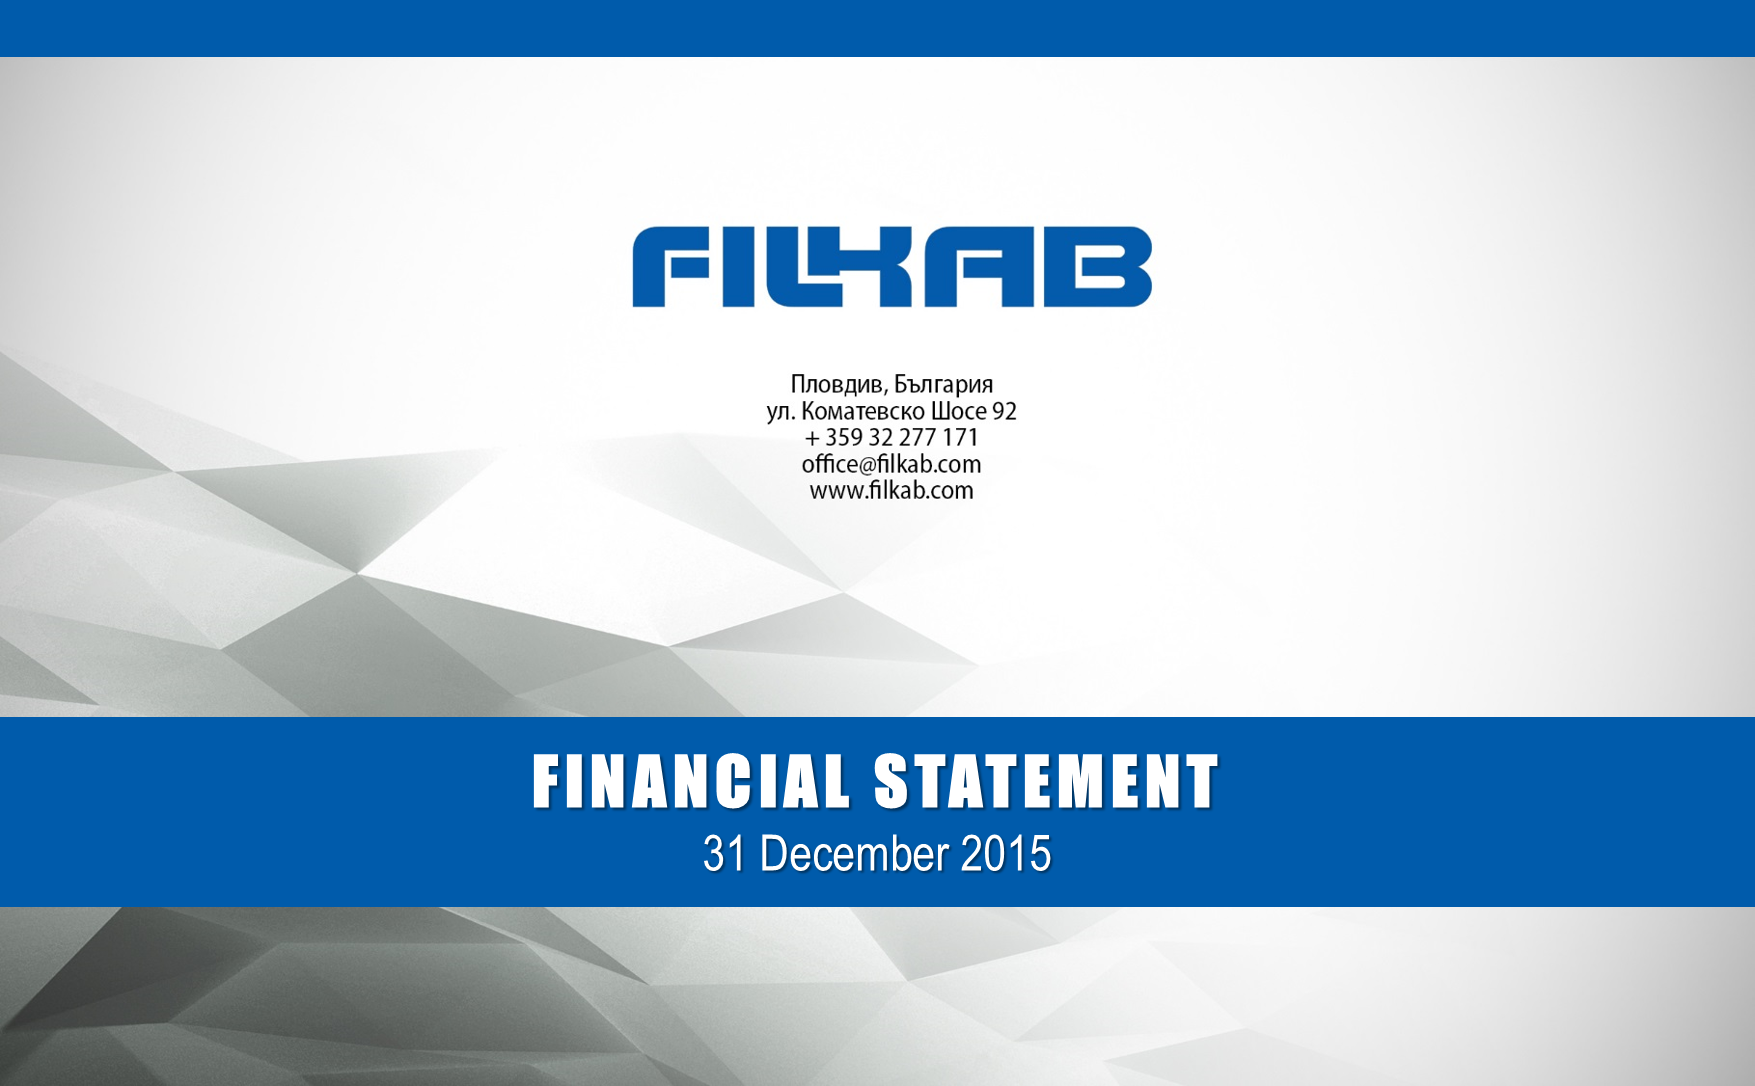 Filkab - about us / Financial reports